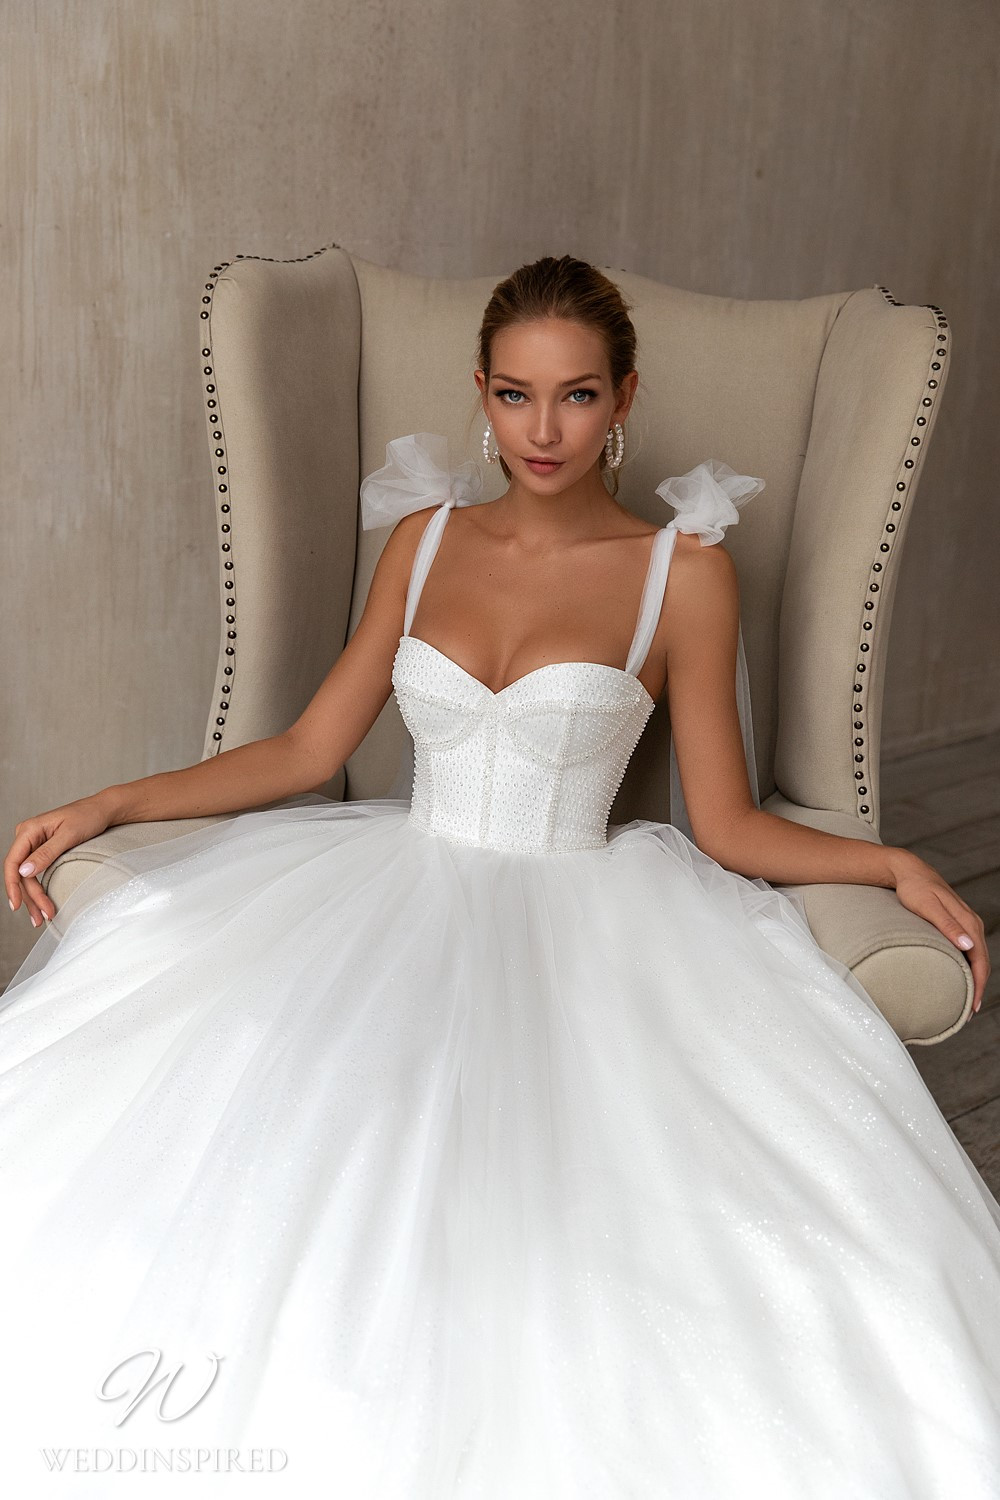 An Eva Lendel 2021 tulle ball gown wedding dress with a bustier top and tulle straps